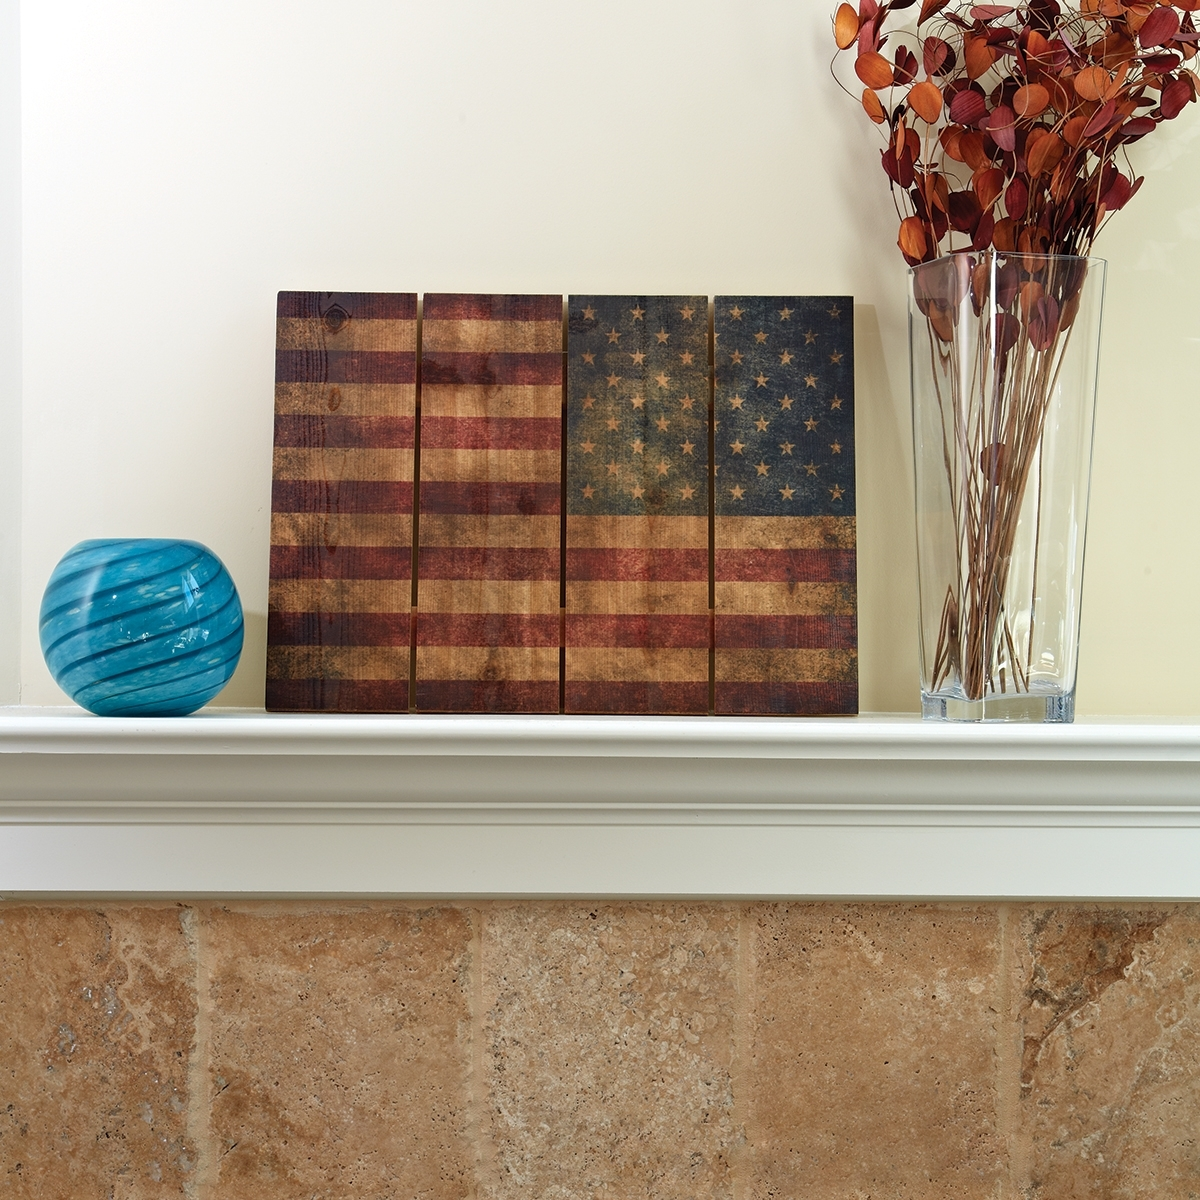 "American Flag Wall Art Regarding 2018 Wooden American Flag Wall Art (22"" X 16"") – From Sportys Preferred (View 3 of 15)"